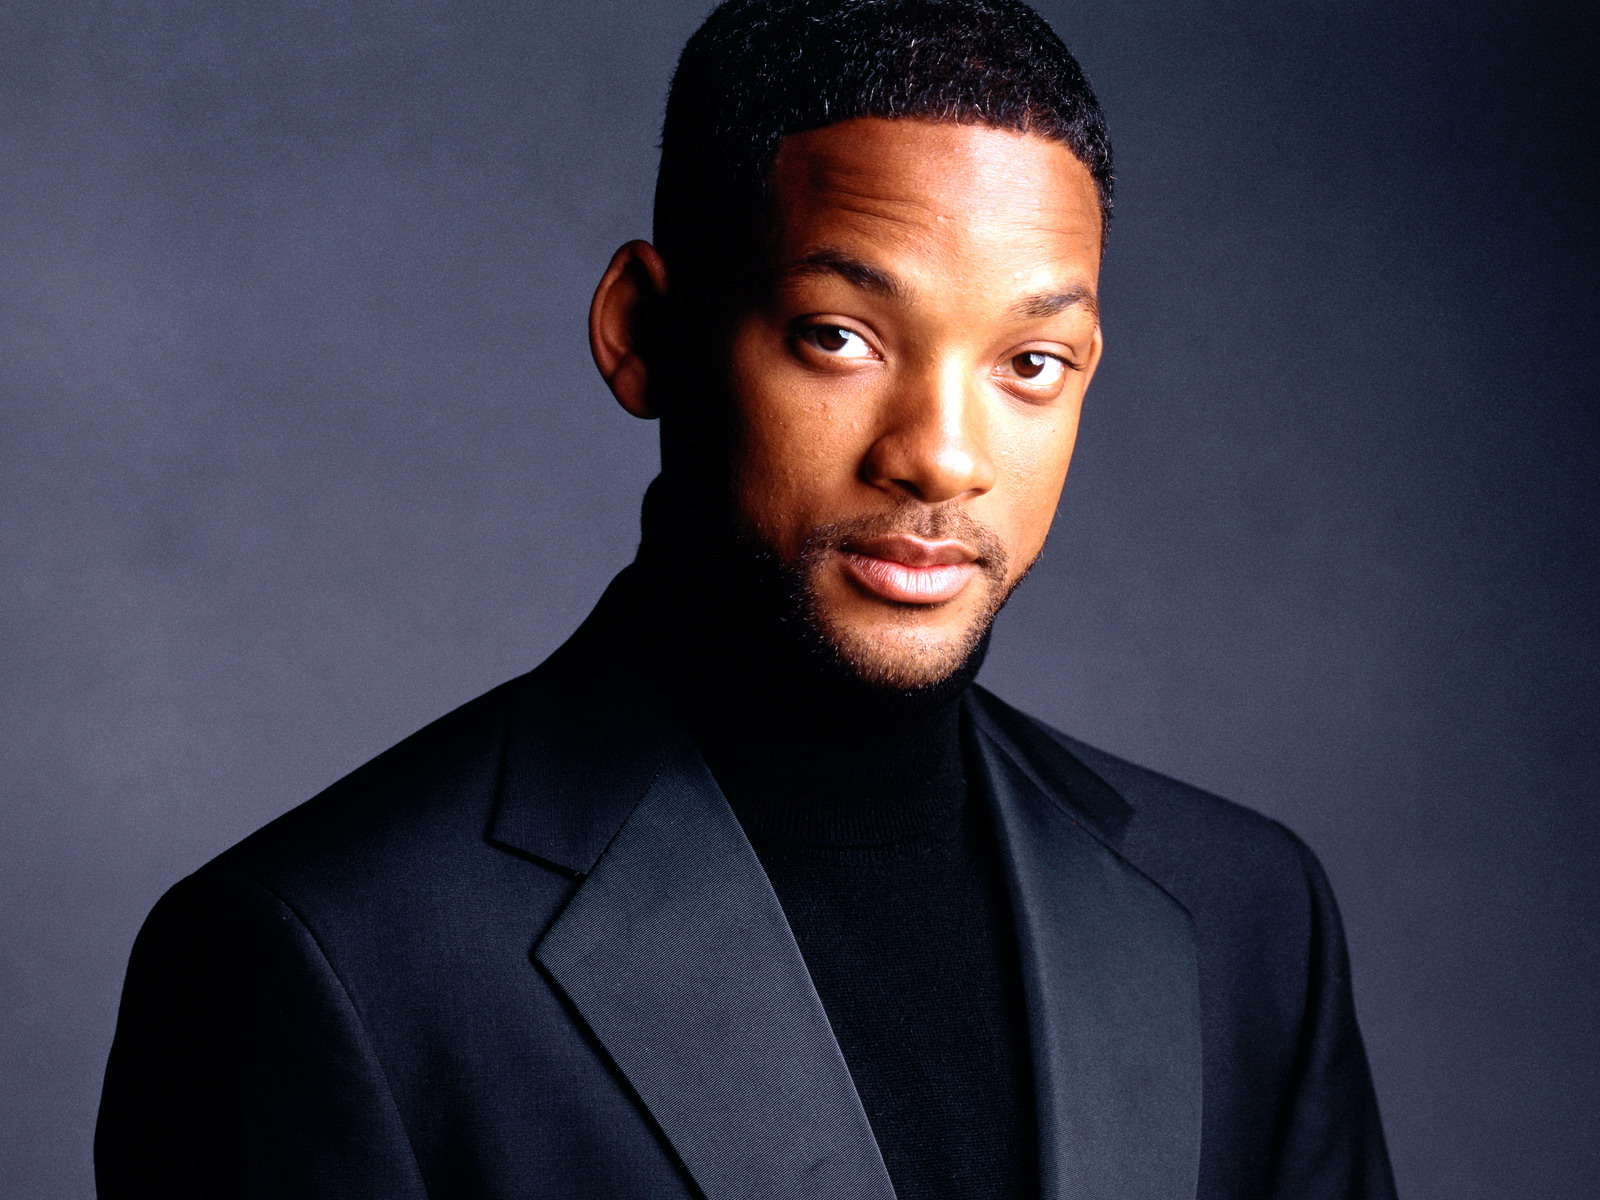 will-smith-image